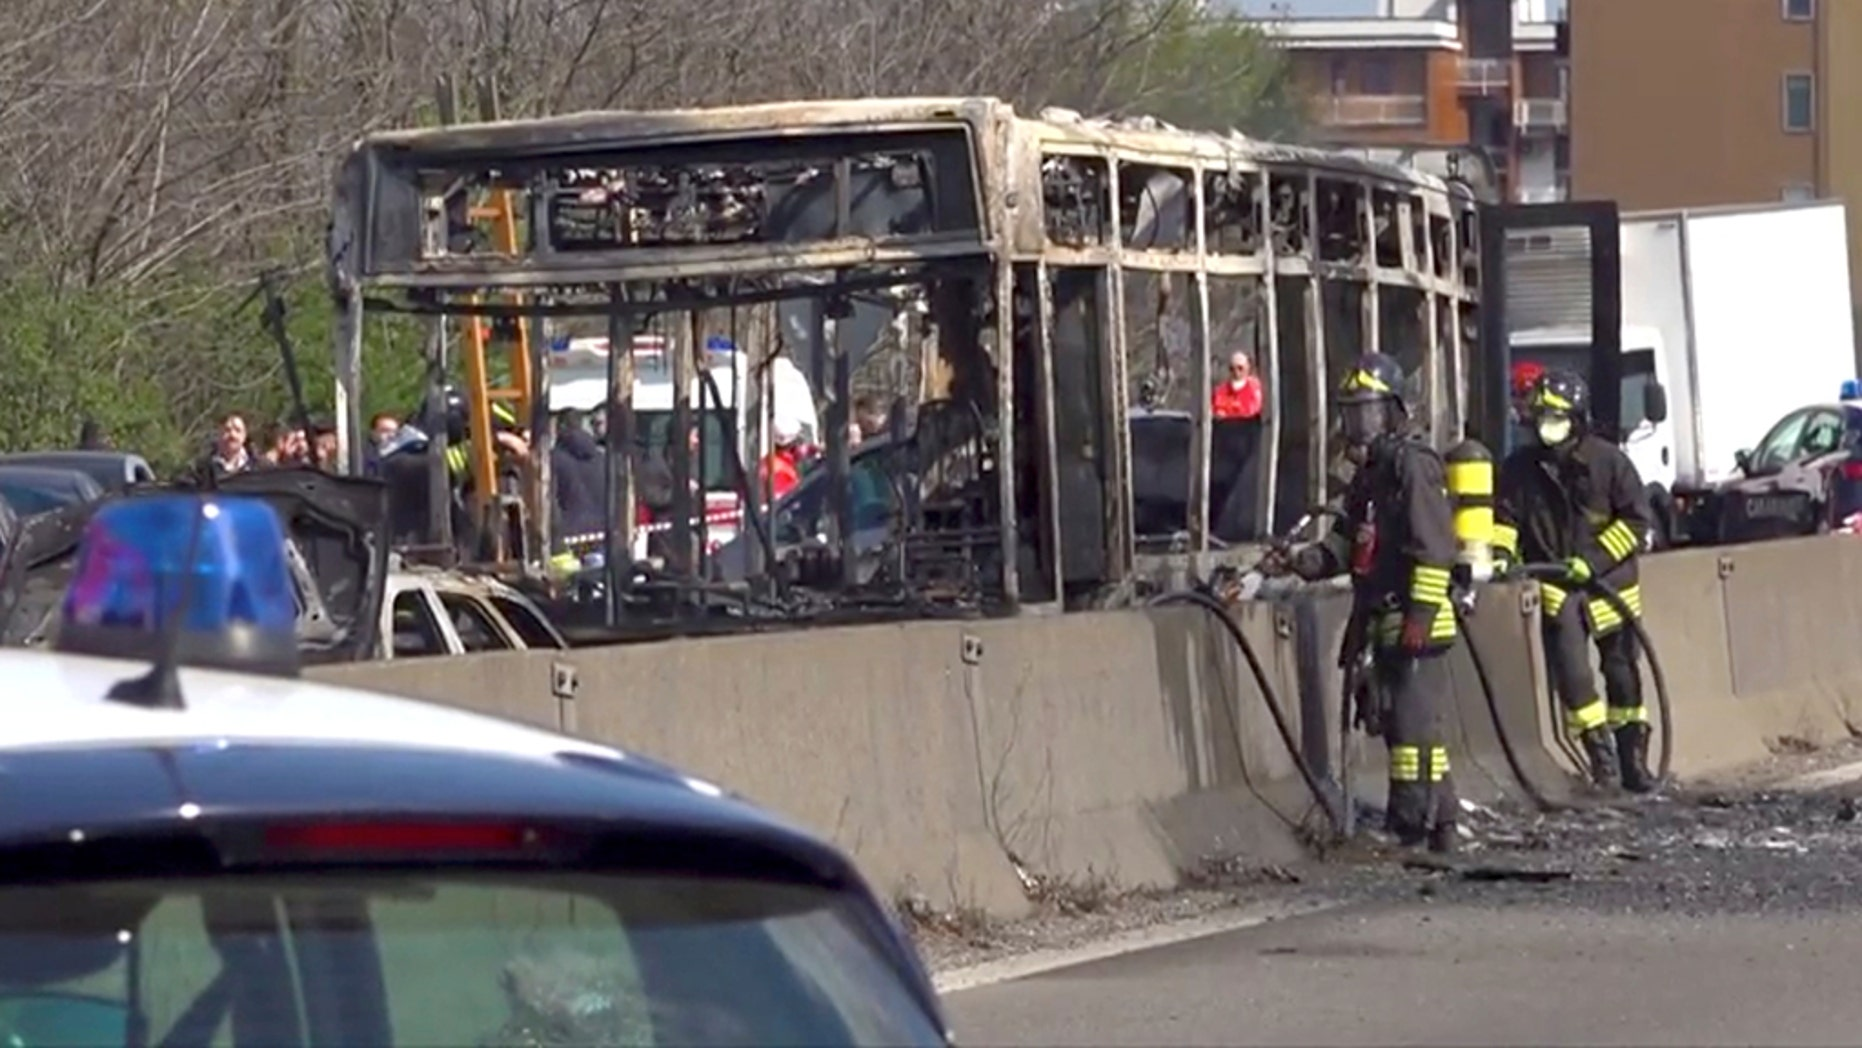 Bus carrying 51 schoolchildren hijacked, set on fire